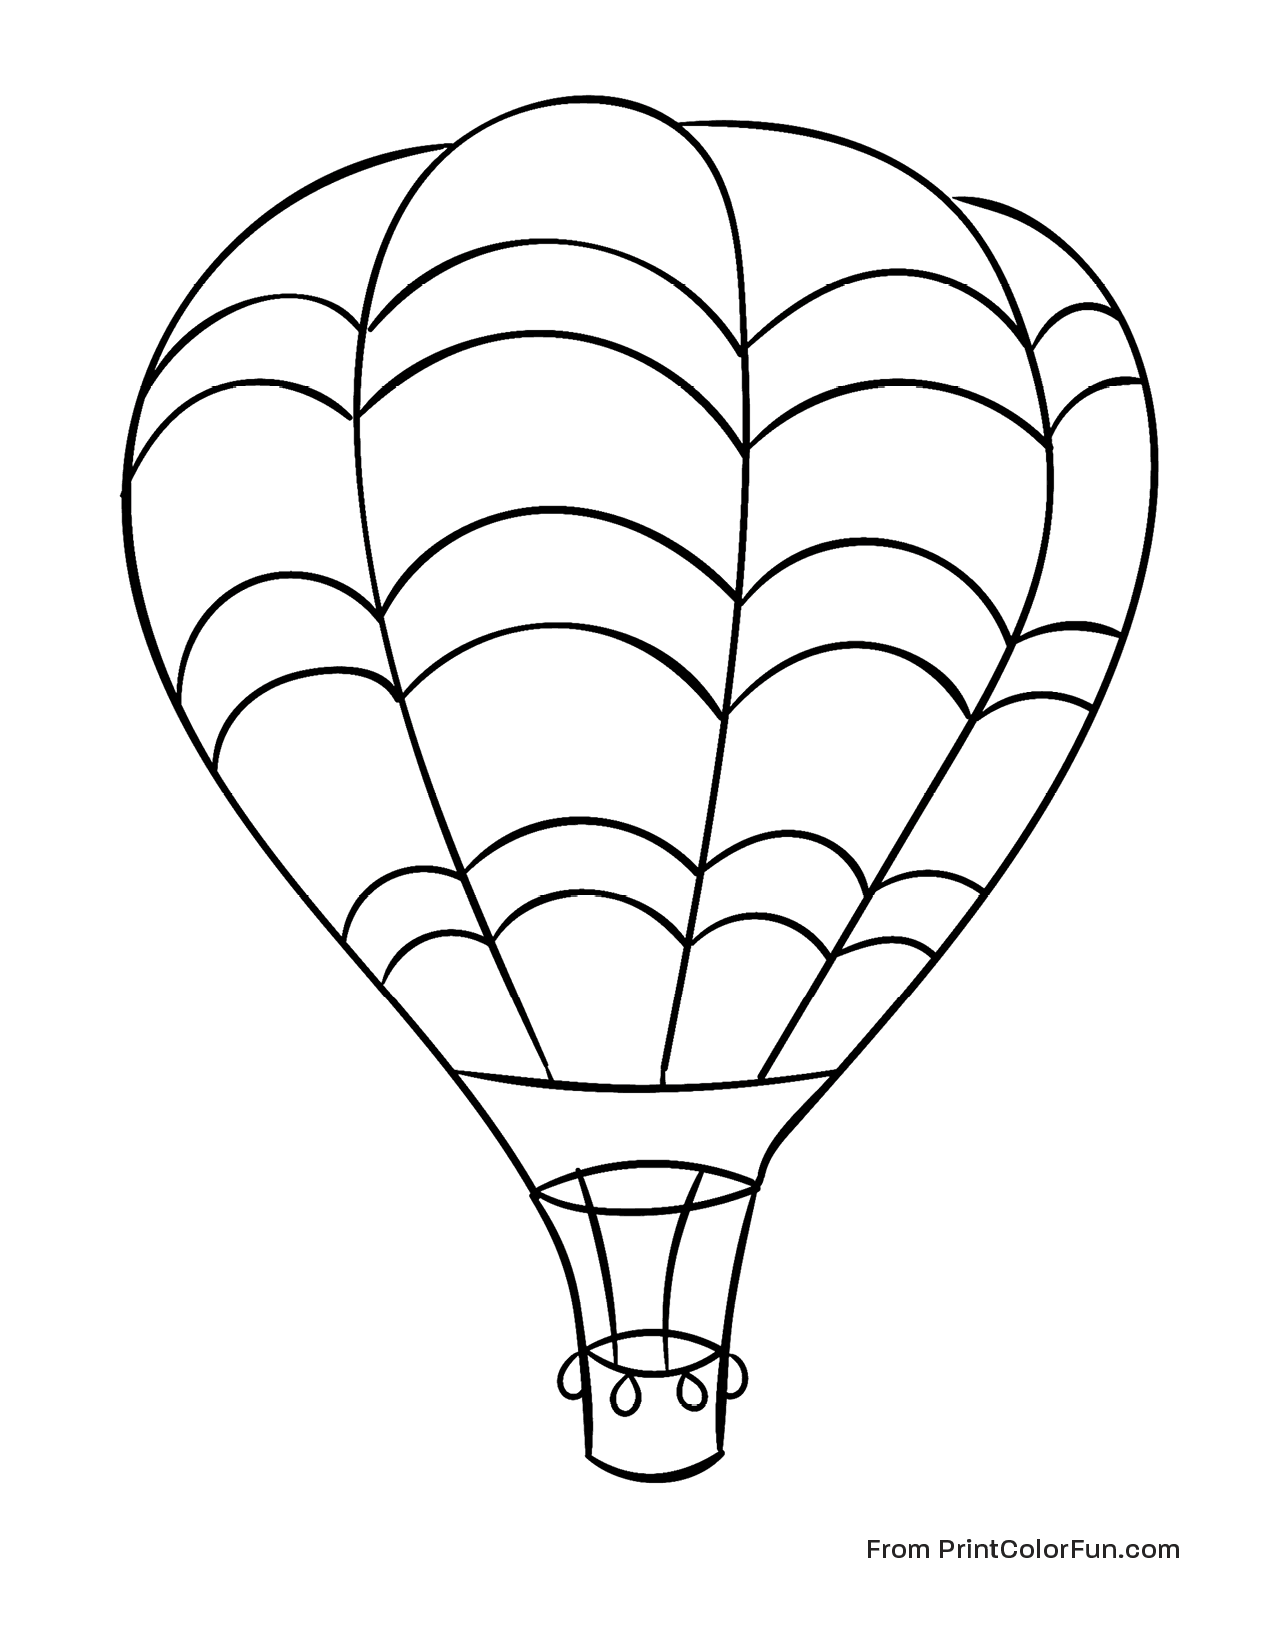 Huge Hot Air Balloon Flying In The Sky Coloring Page